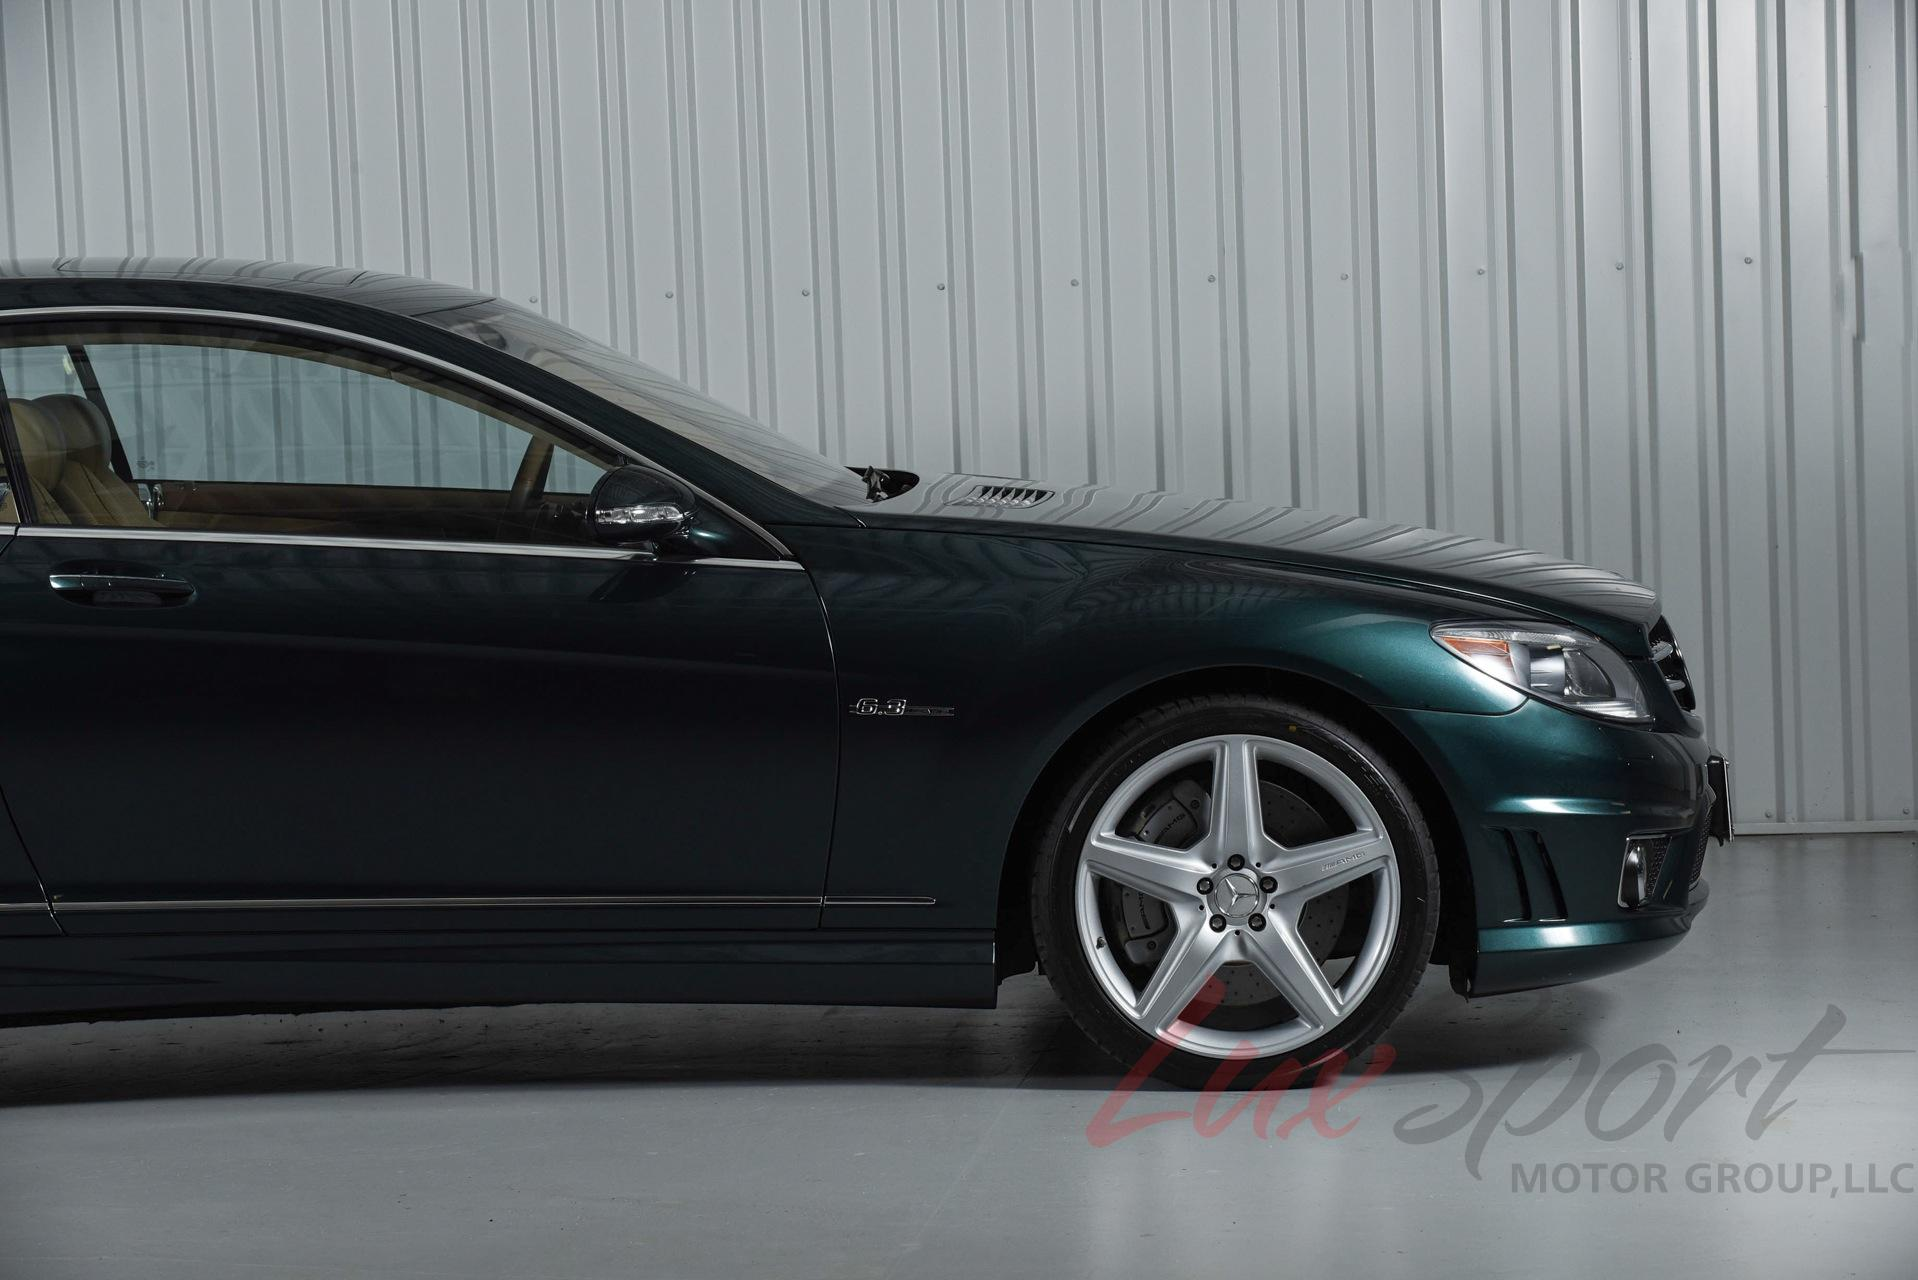 2008 mercedes benz cl63 amg coupe used mercedes benz cl class for sale in new hyde park new. Black Bedroom Furniture Sets. Home Design Ideas